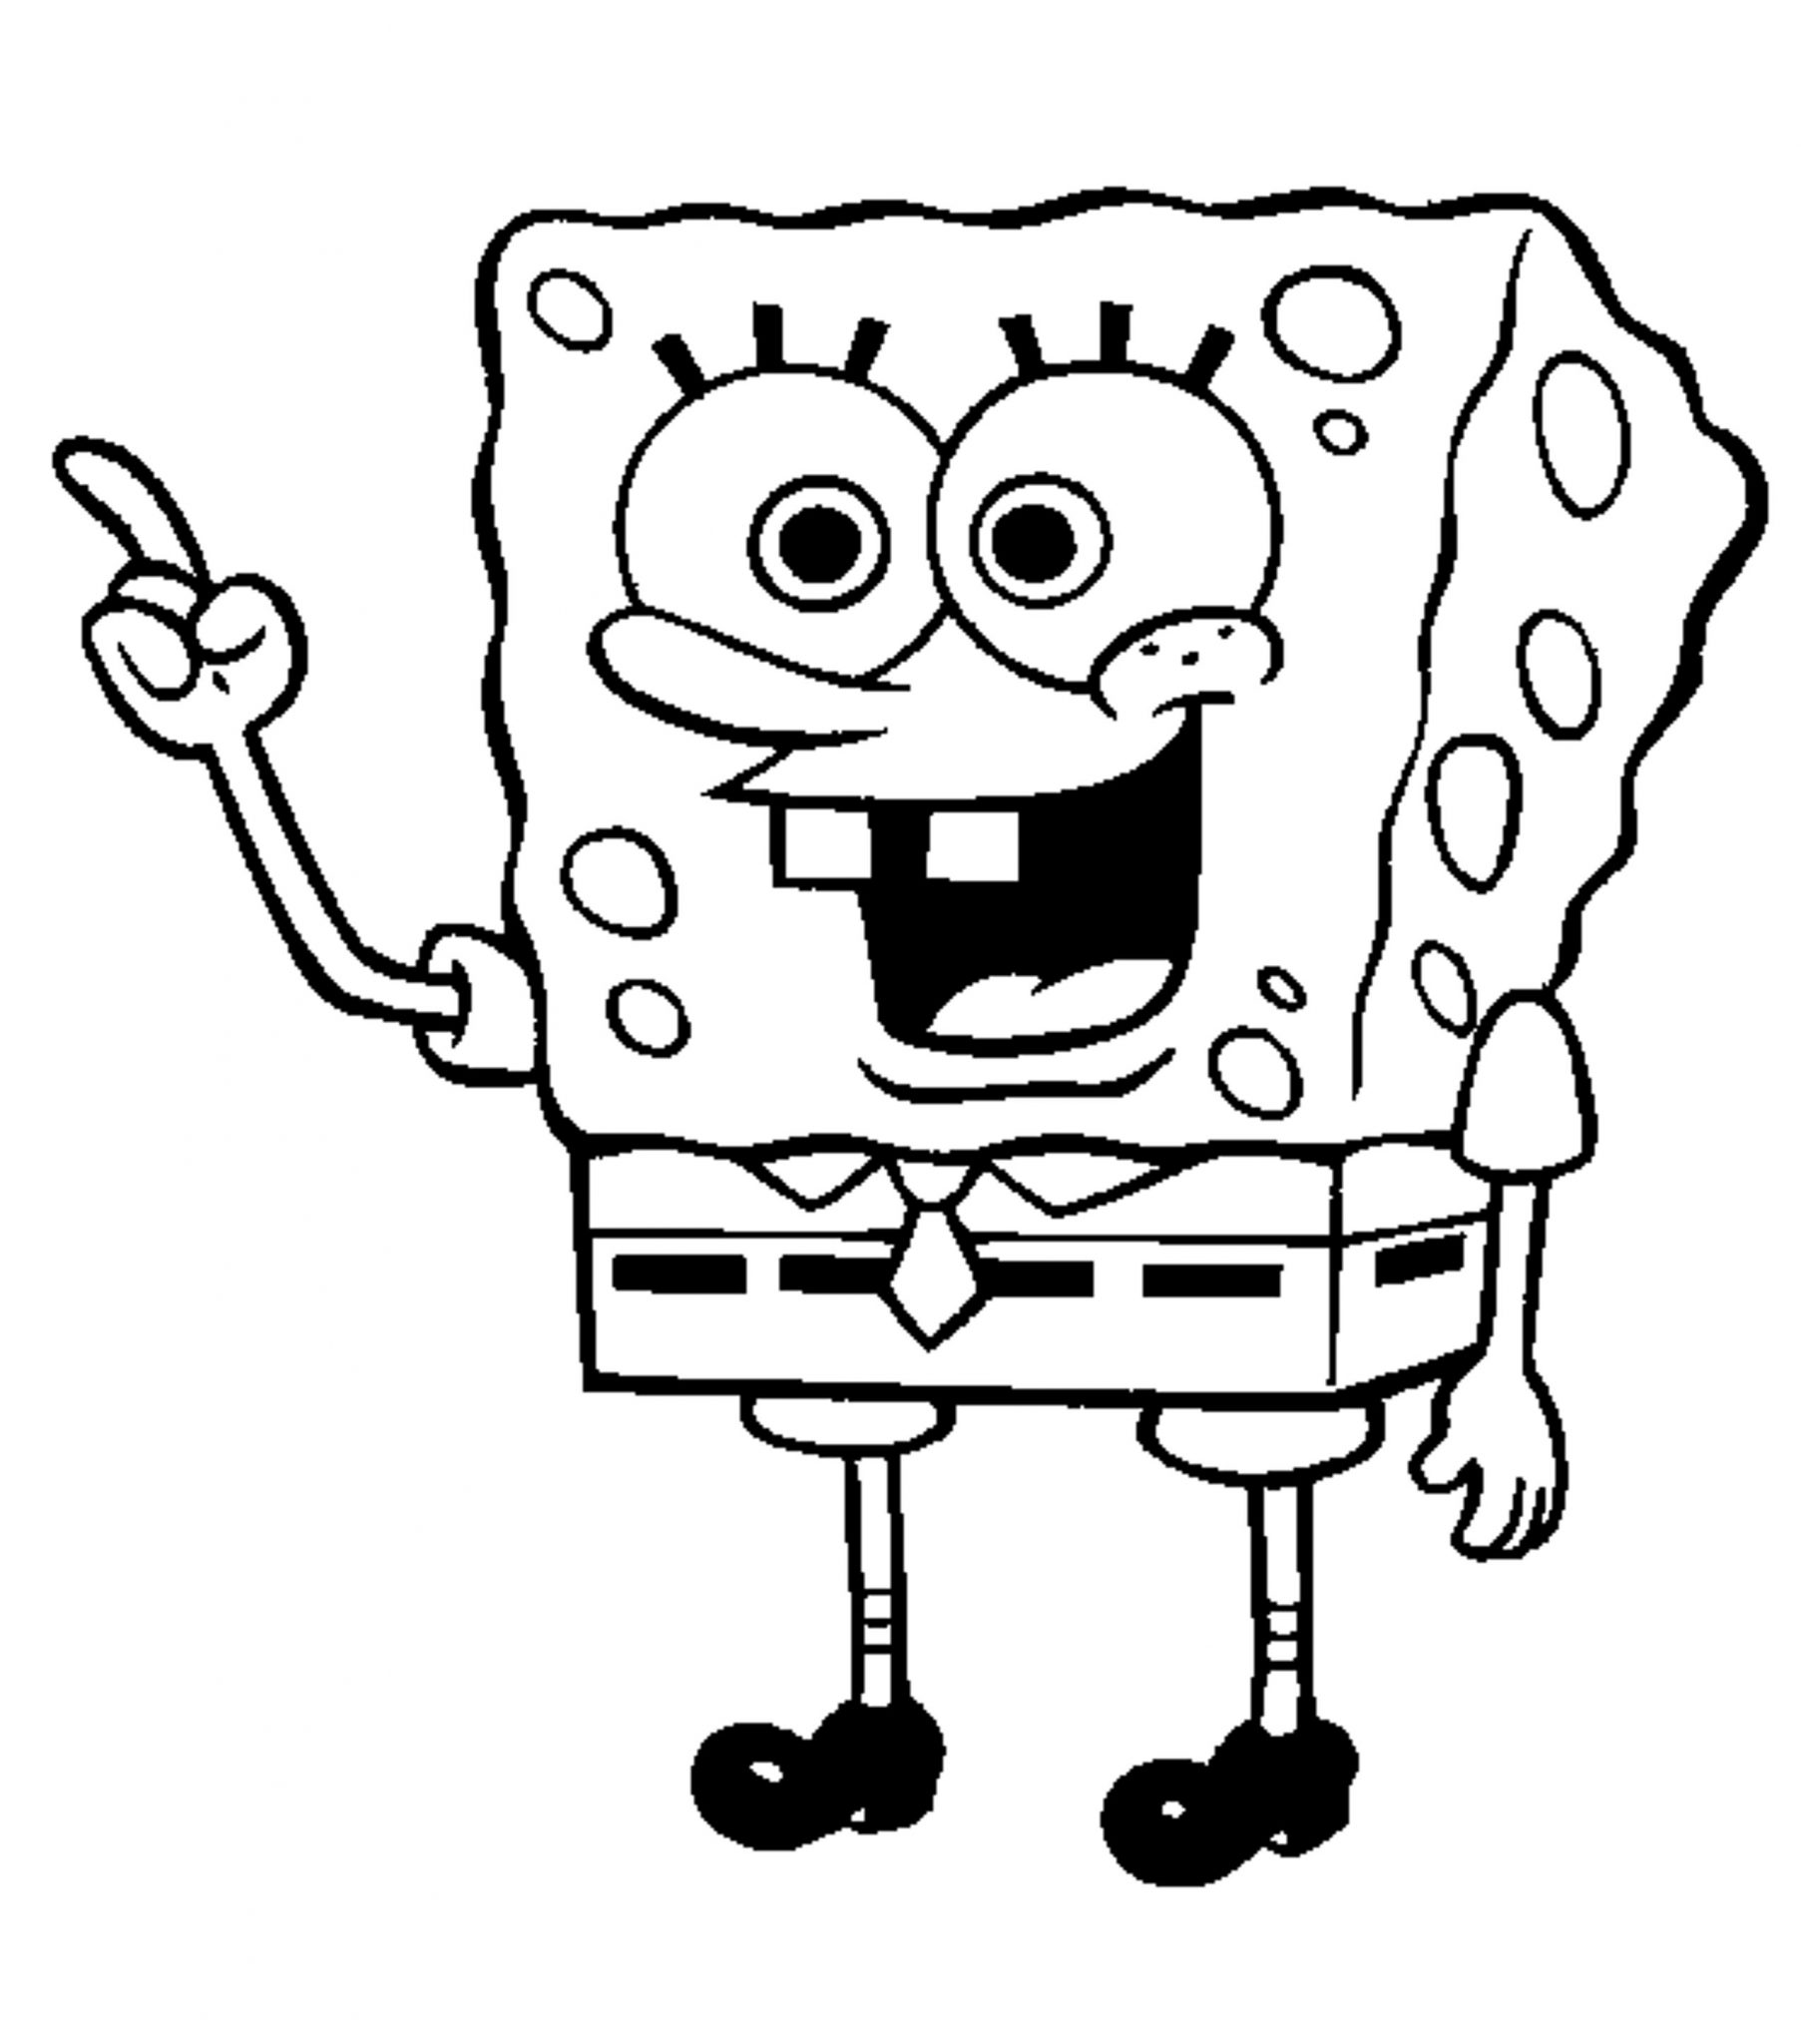 coloring pages of spongebob print download choosing spongebob coloring pages for of spongebob coloring pages